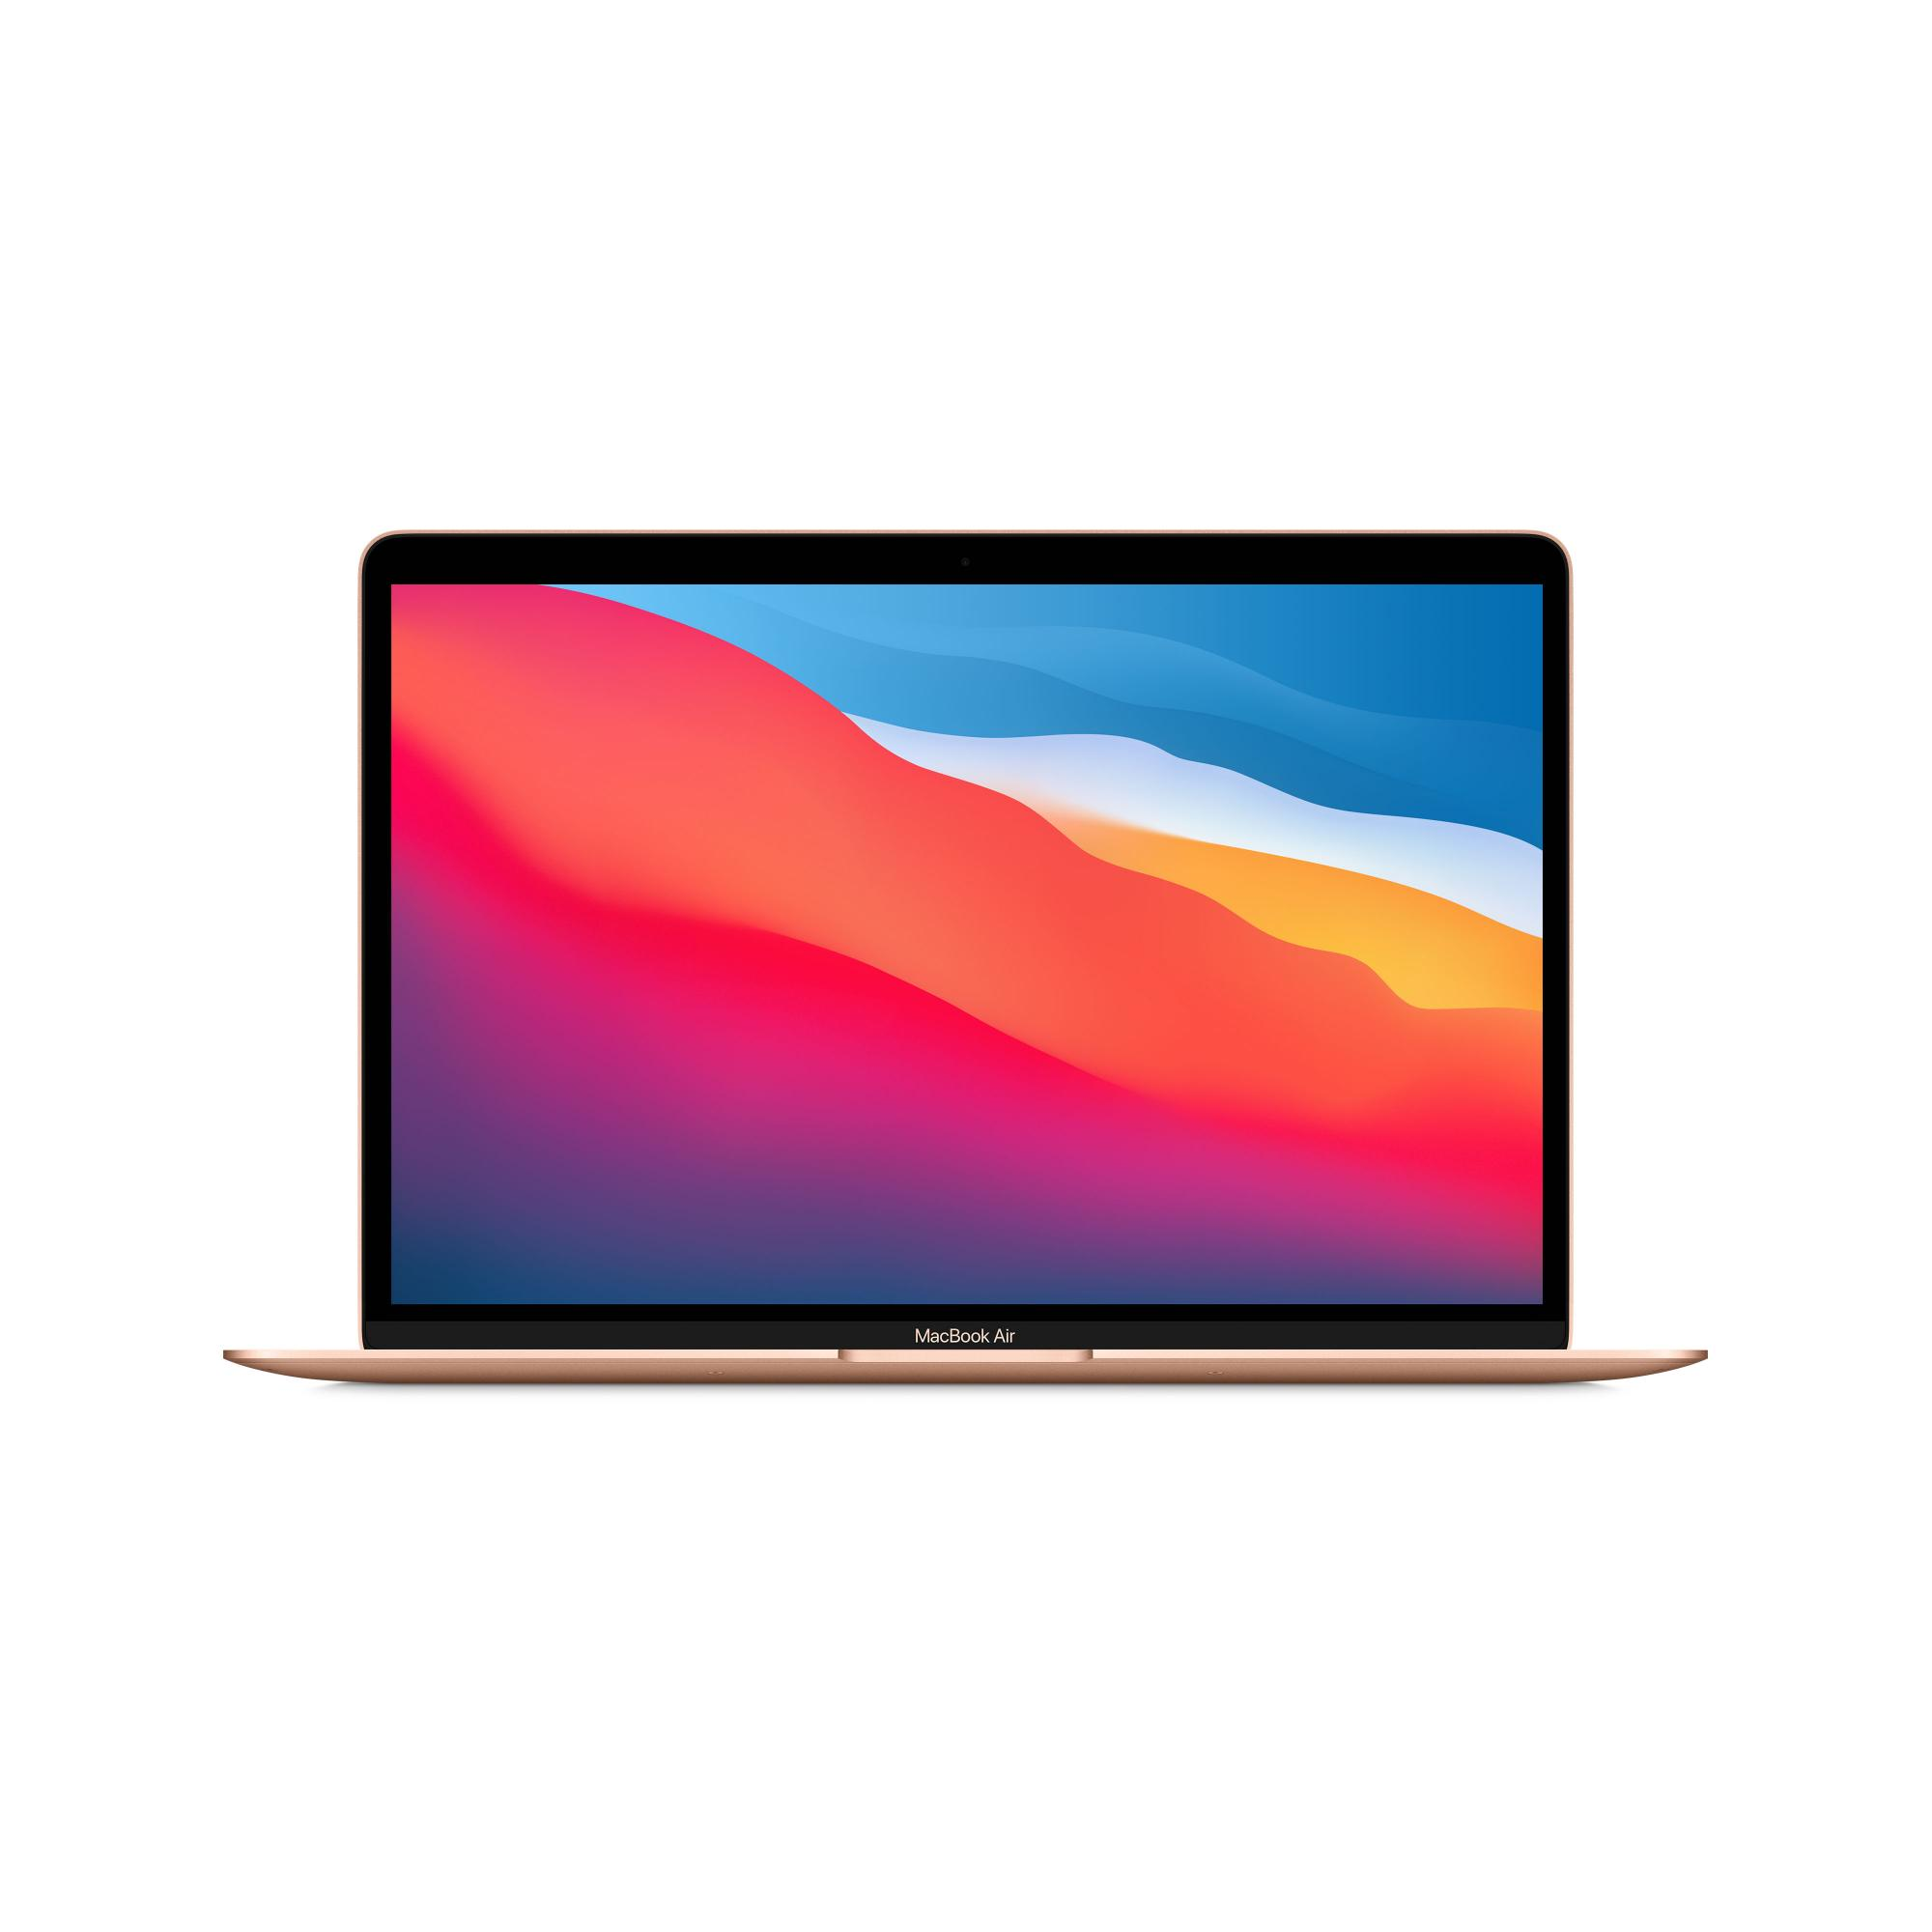 Apple MacBook Air (M1, 2020) 16 ГБ, 256 ГБ SSD, золотой СТО